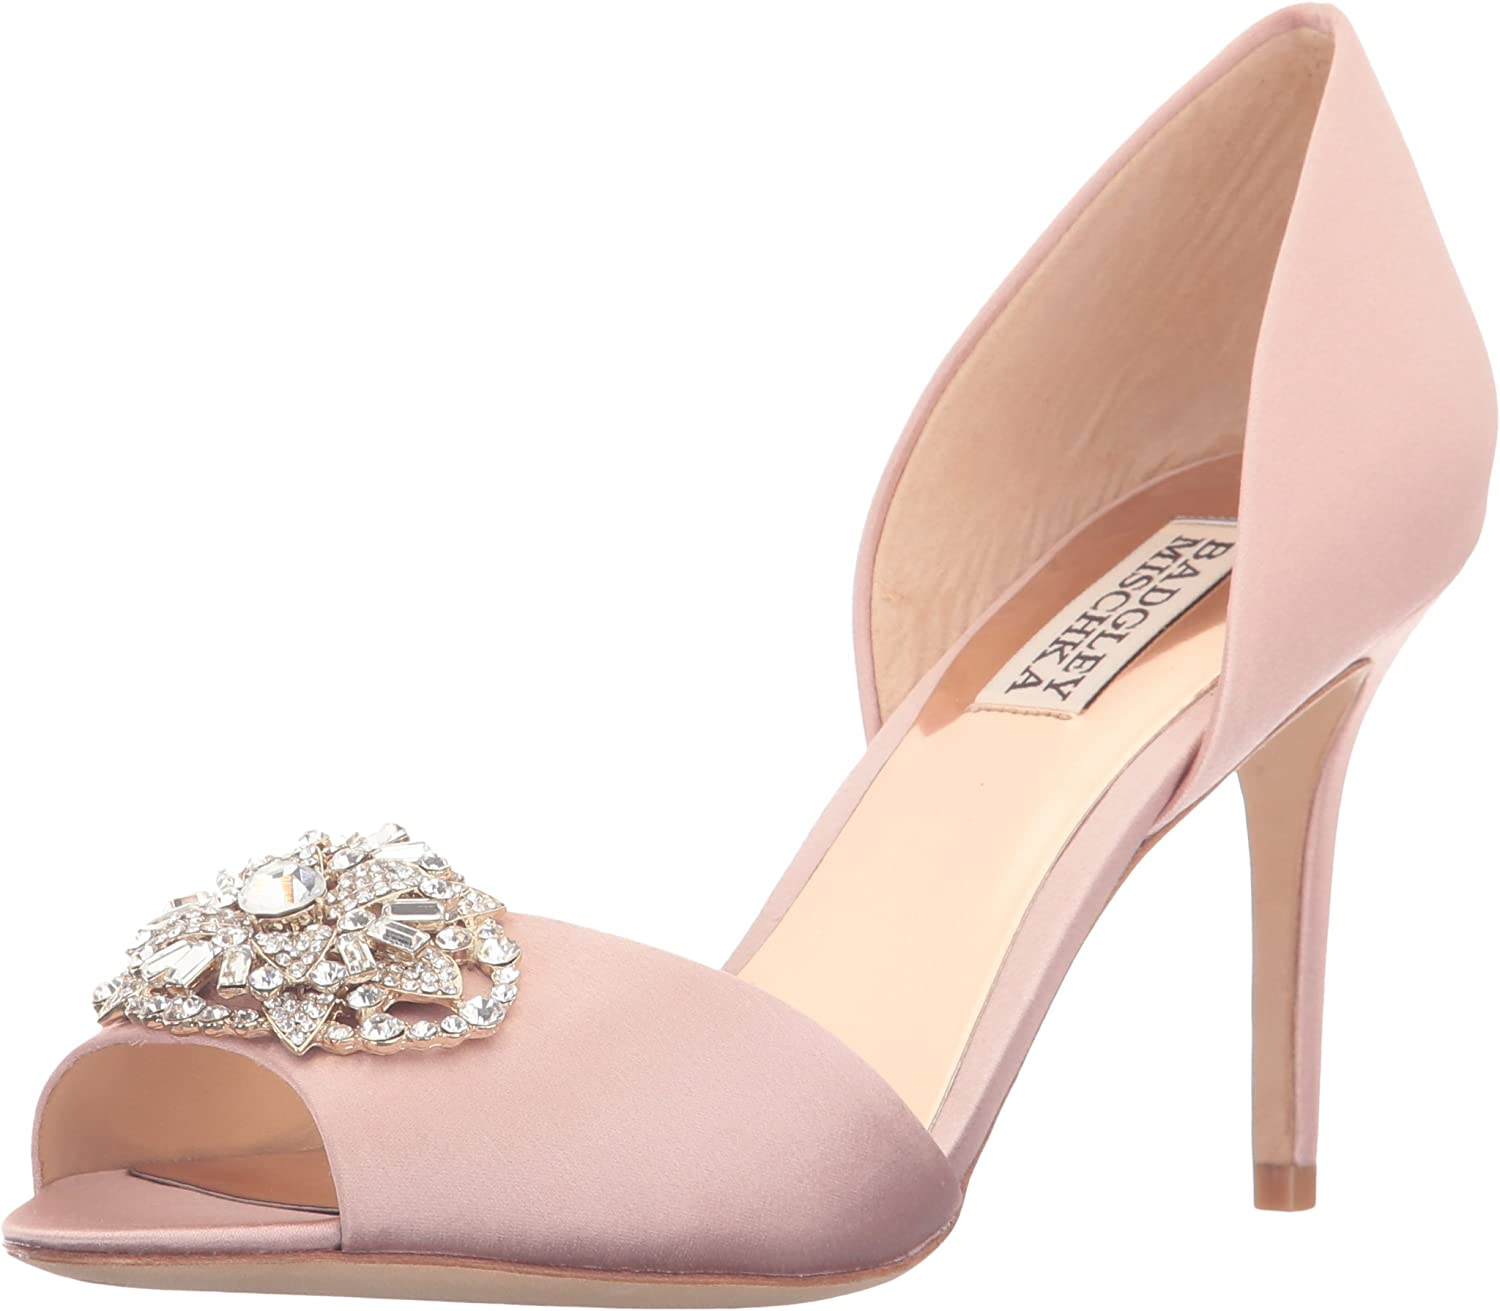 Badgley Mischka Womens Dana Dress Pump